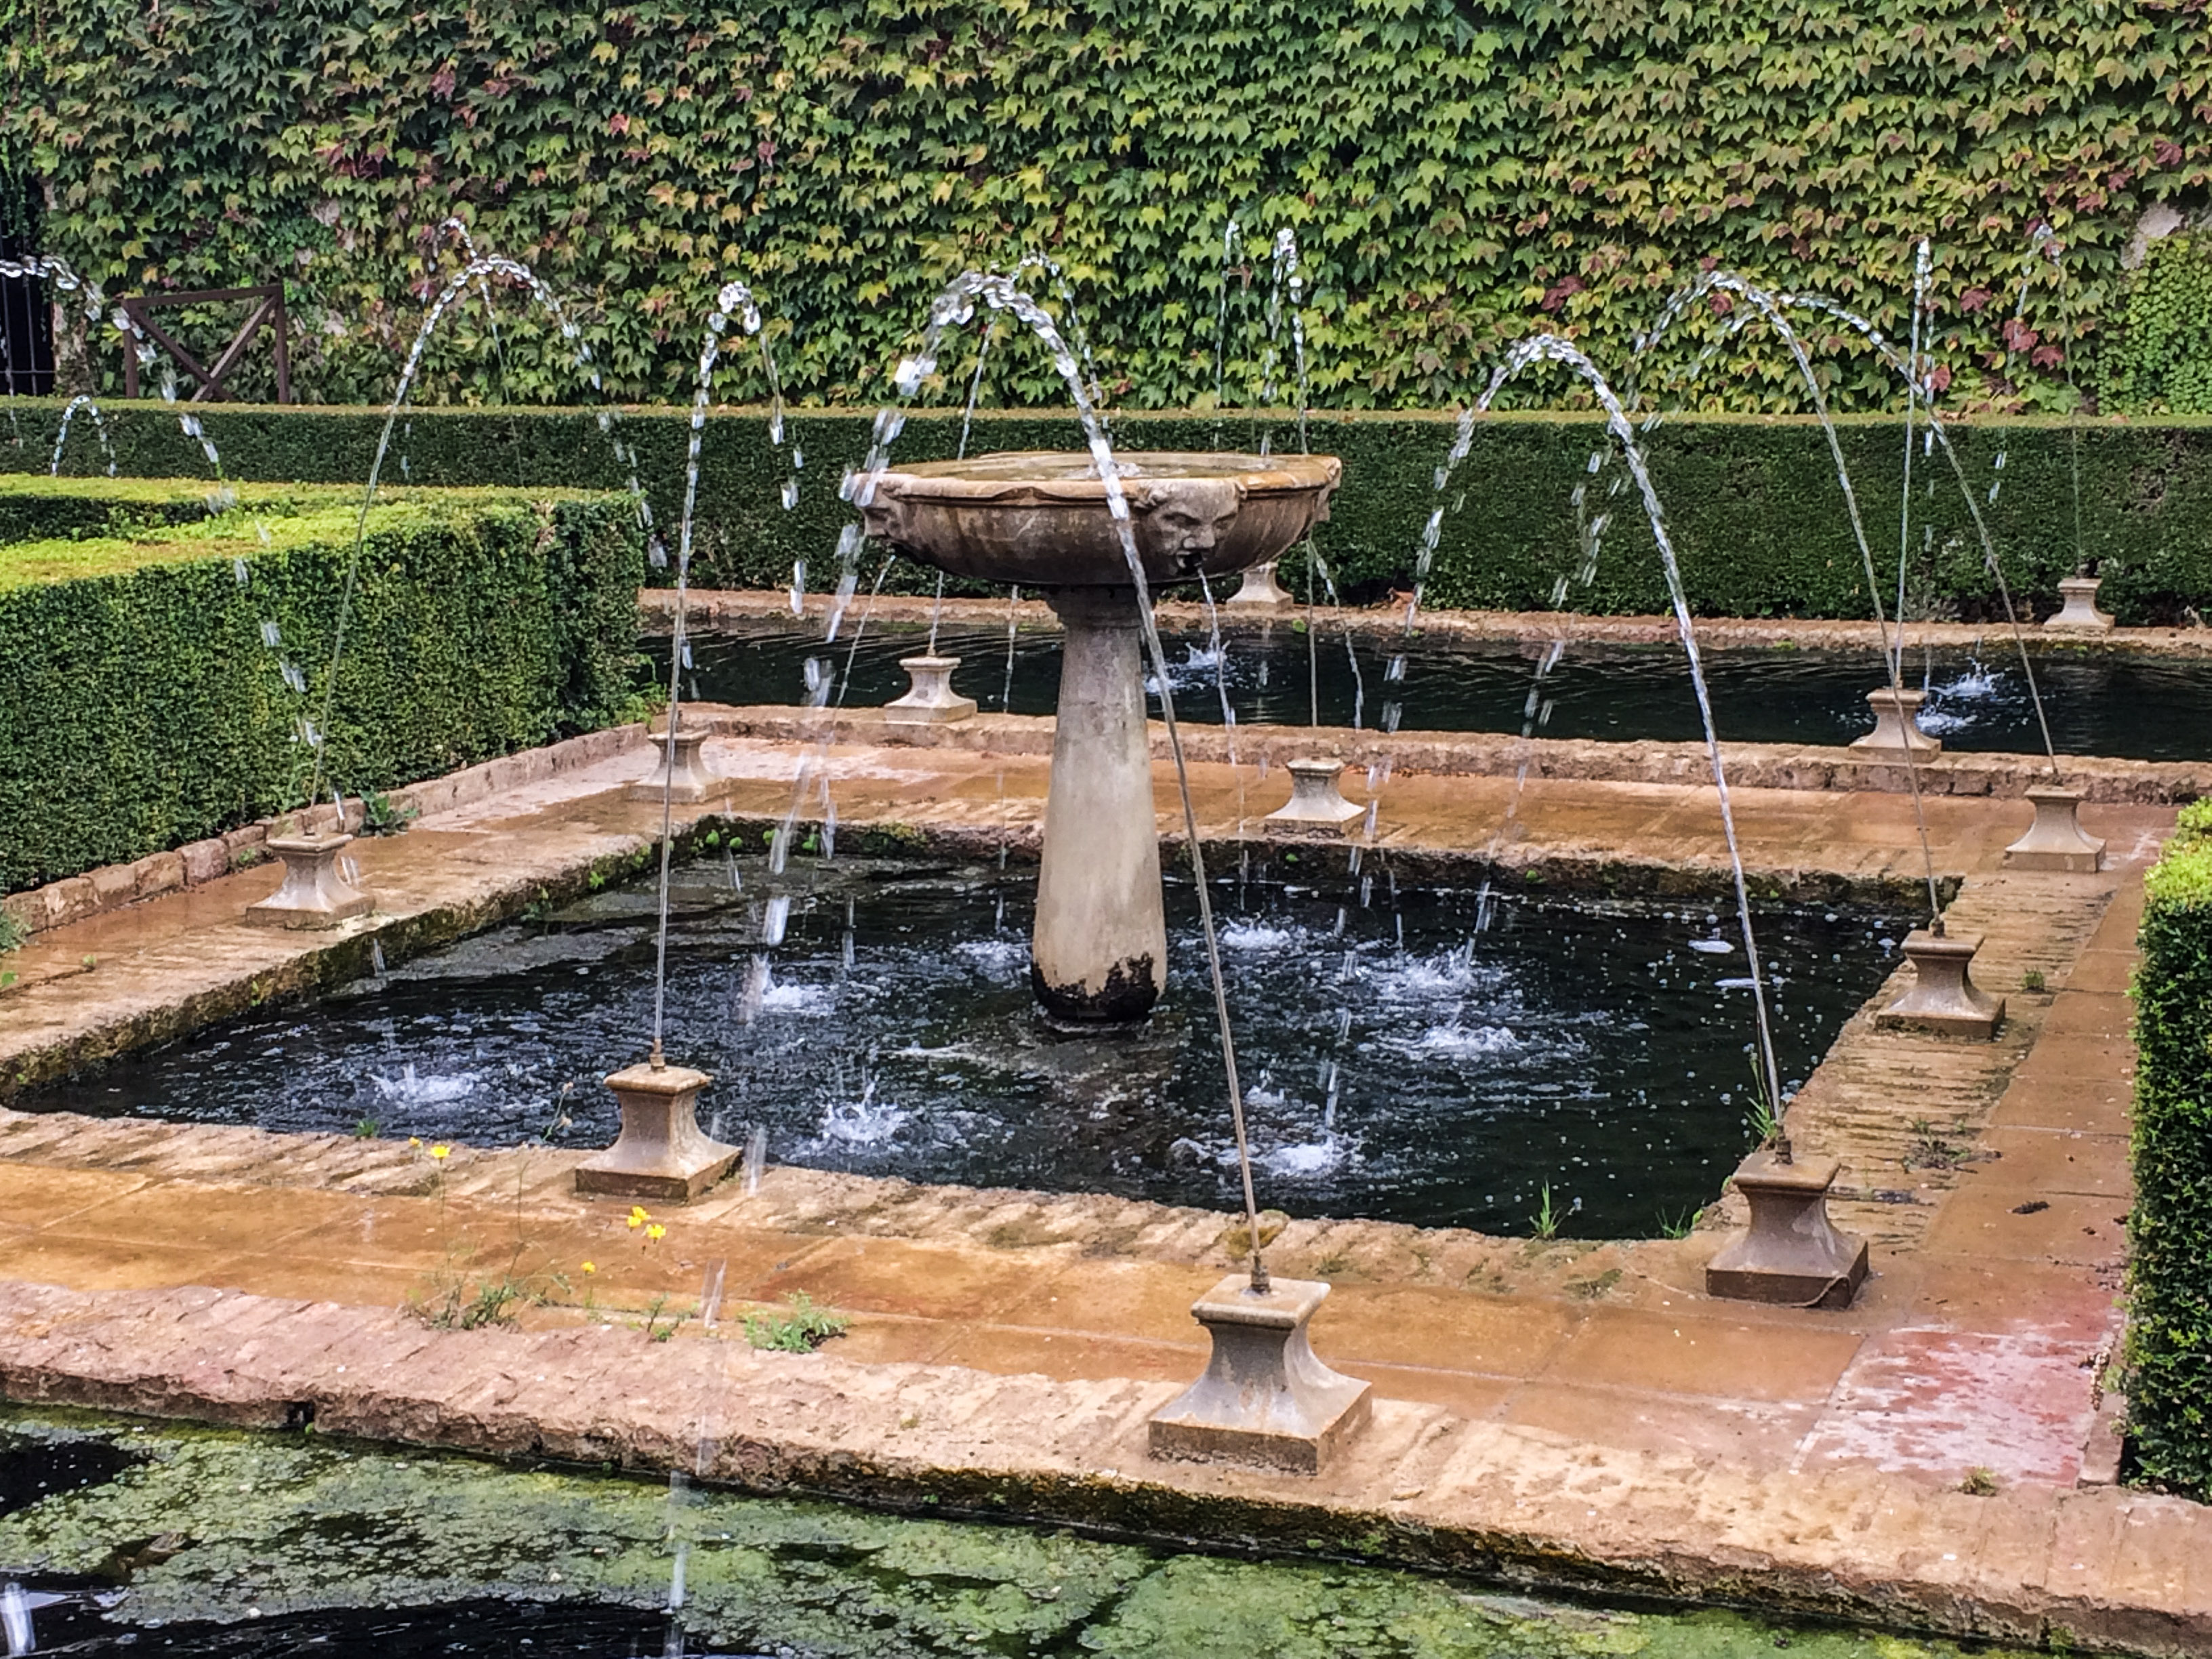 Gardens of the Generalife, Alhambra's summer palace in Granada, Spain. Dawn Page / CoastsideSlacking